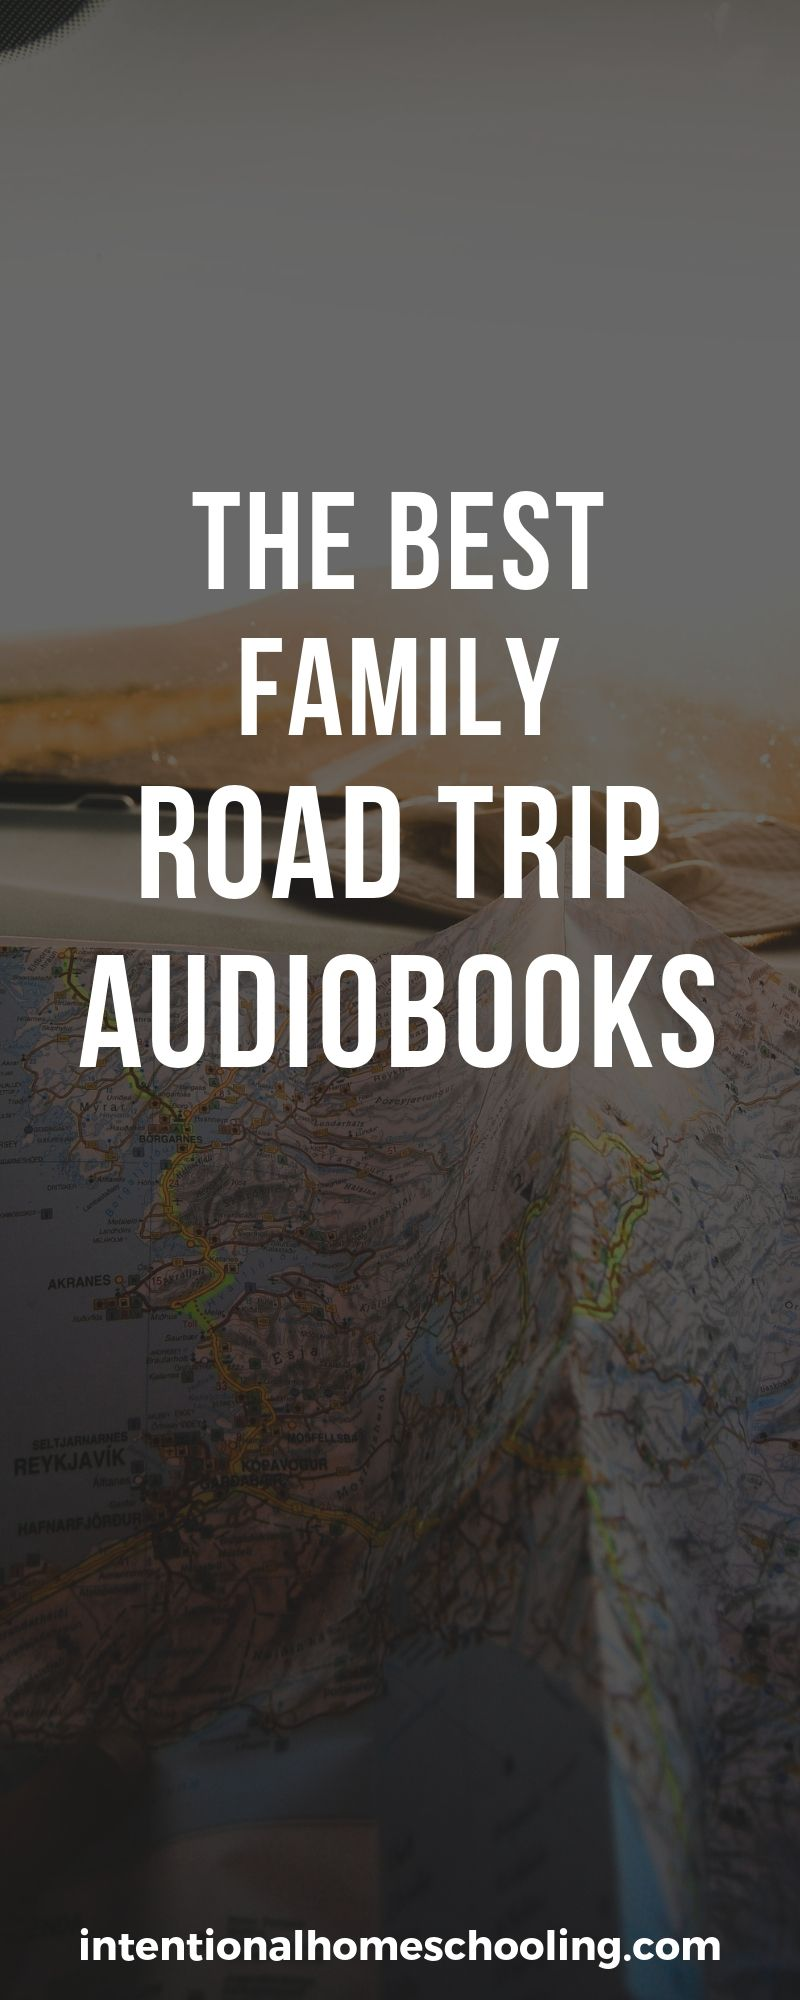 The Best Audiobooks for Family Road Trips - books the whole family will love